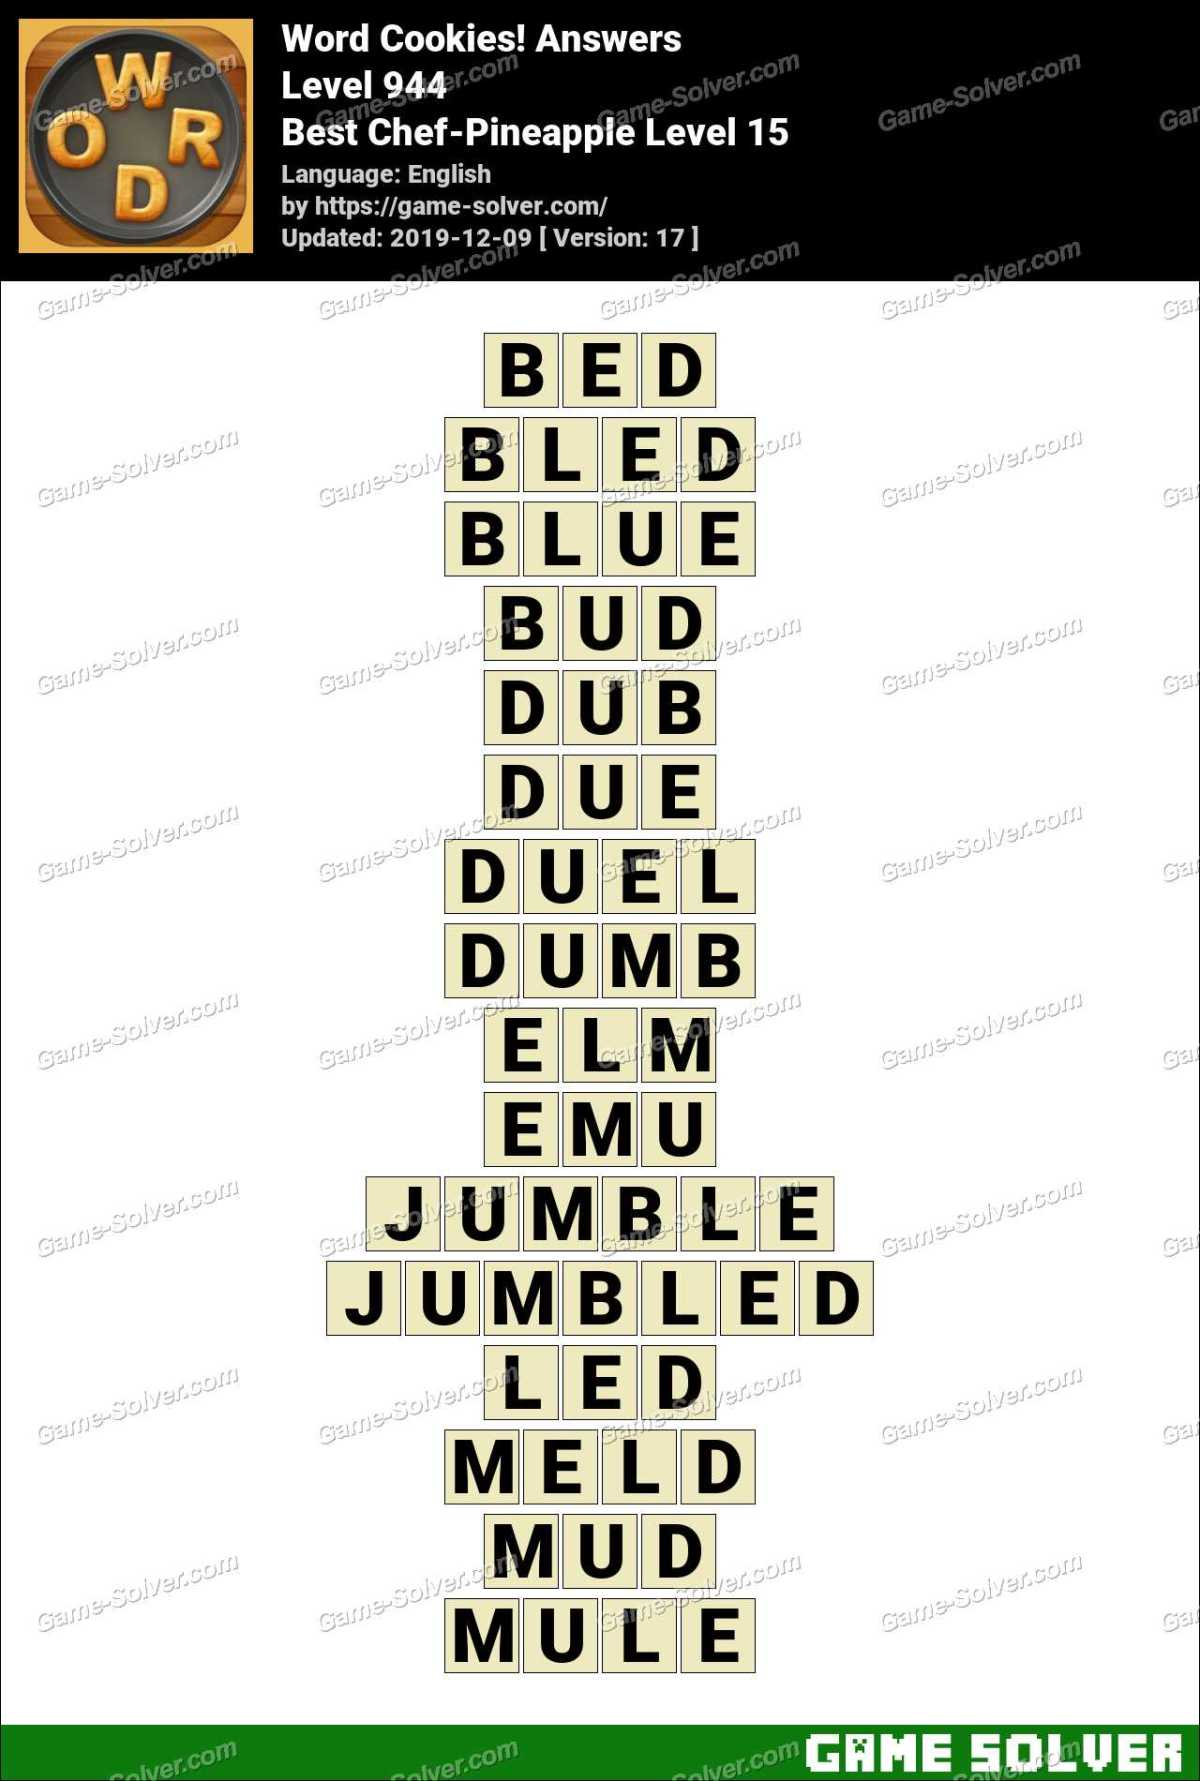 Word Cookies Best Chef-Pineapple Level 15 Answers